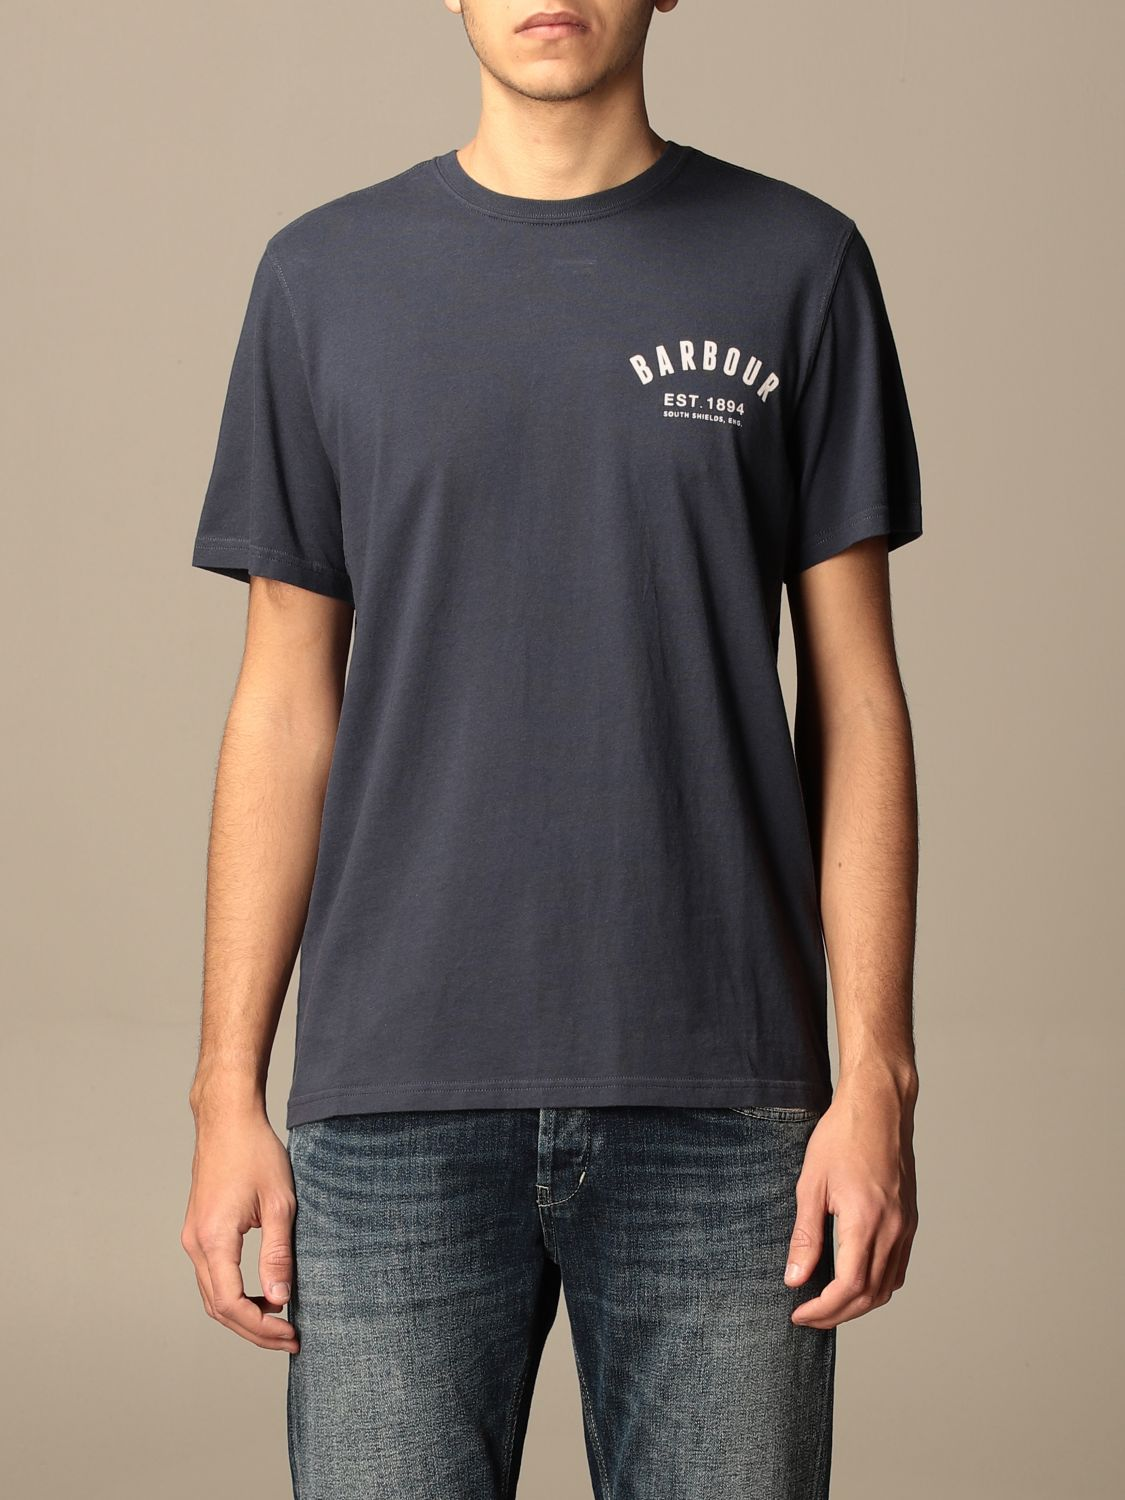 T-shirt Barbour: Barbour cotton t-shirt with logo detail white 1